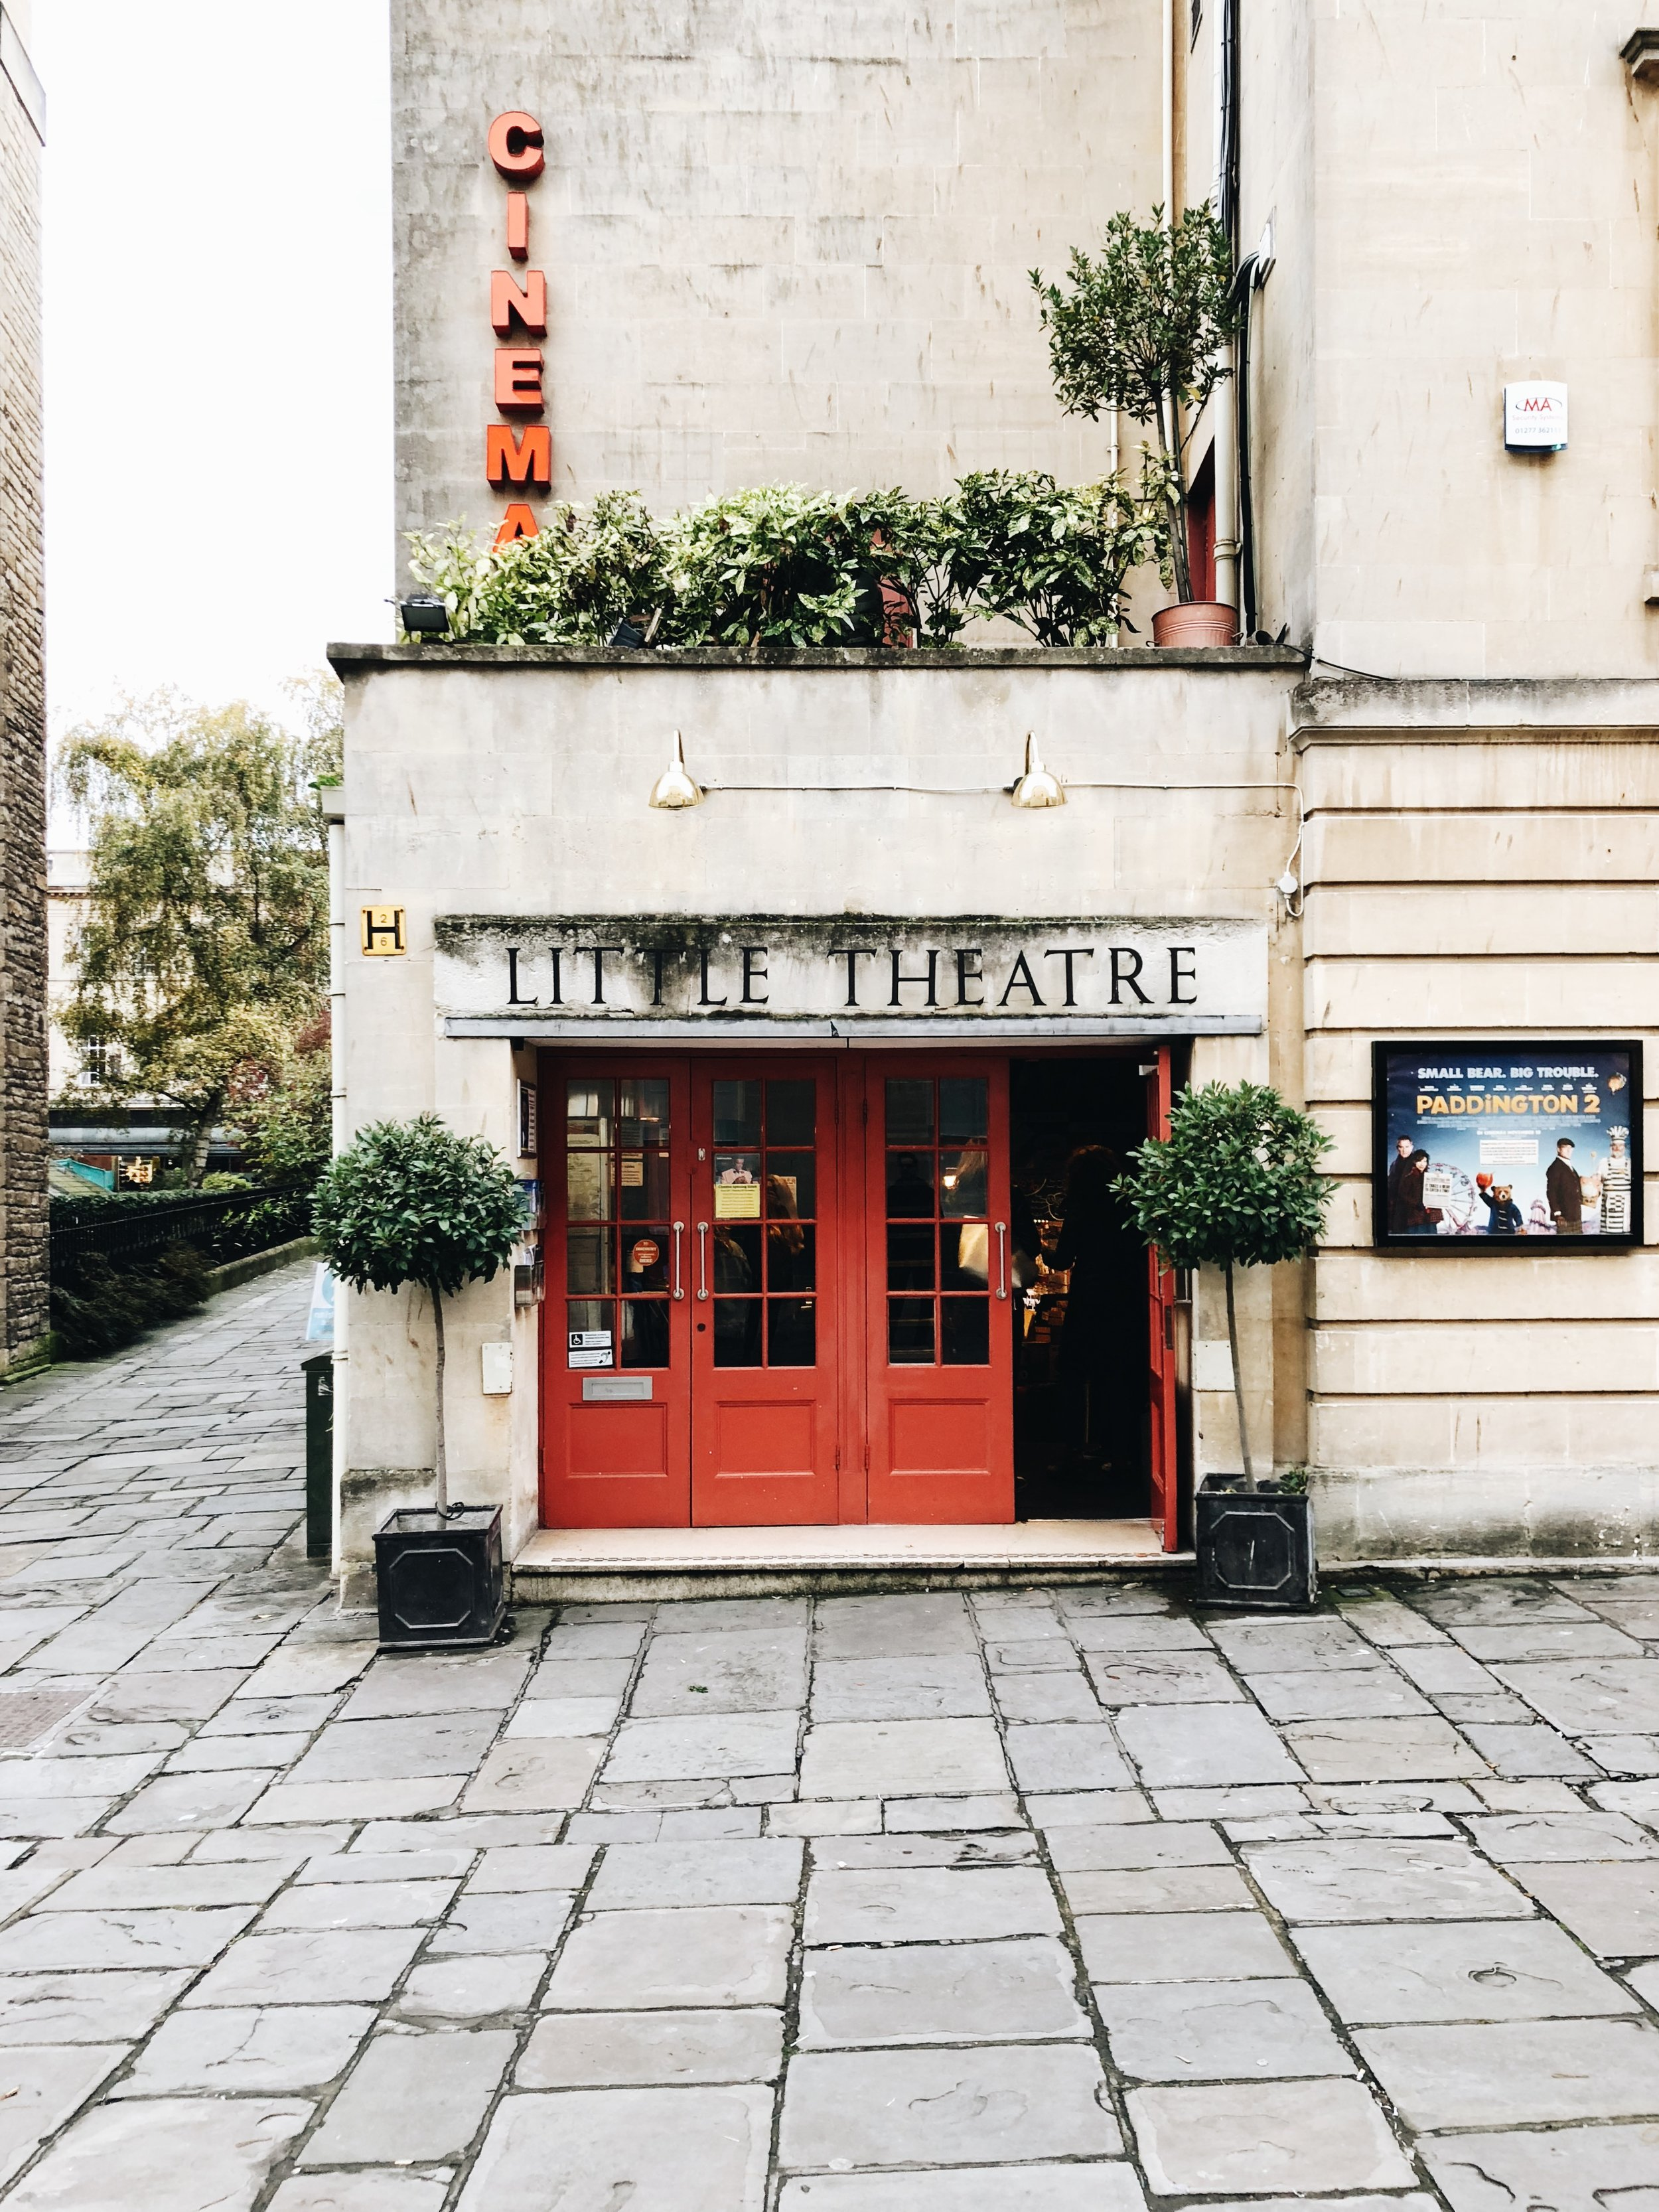 Little Theatre | Bath, England | Sea of Atlas